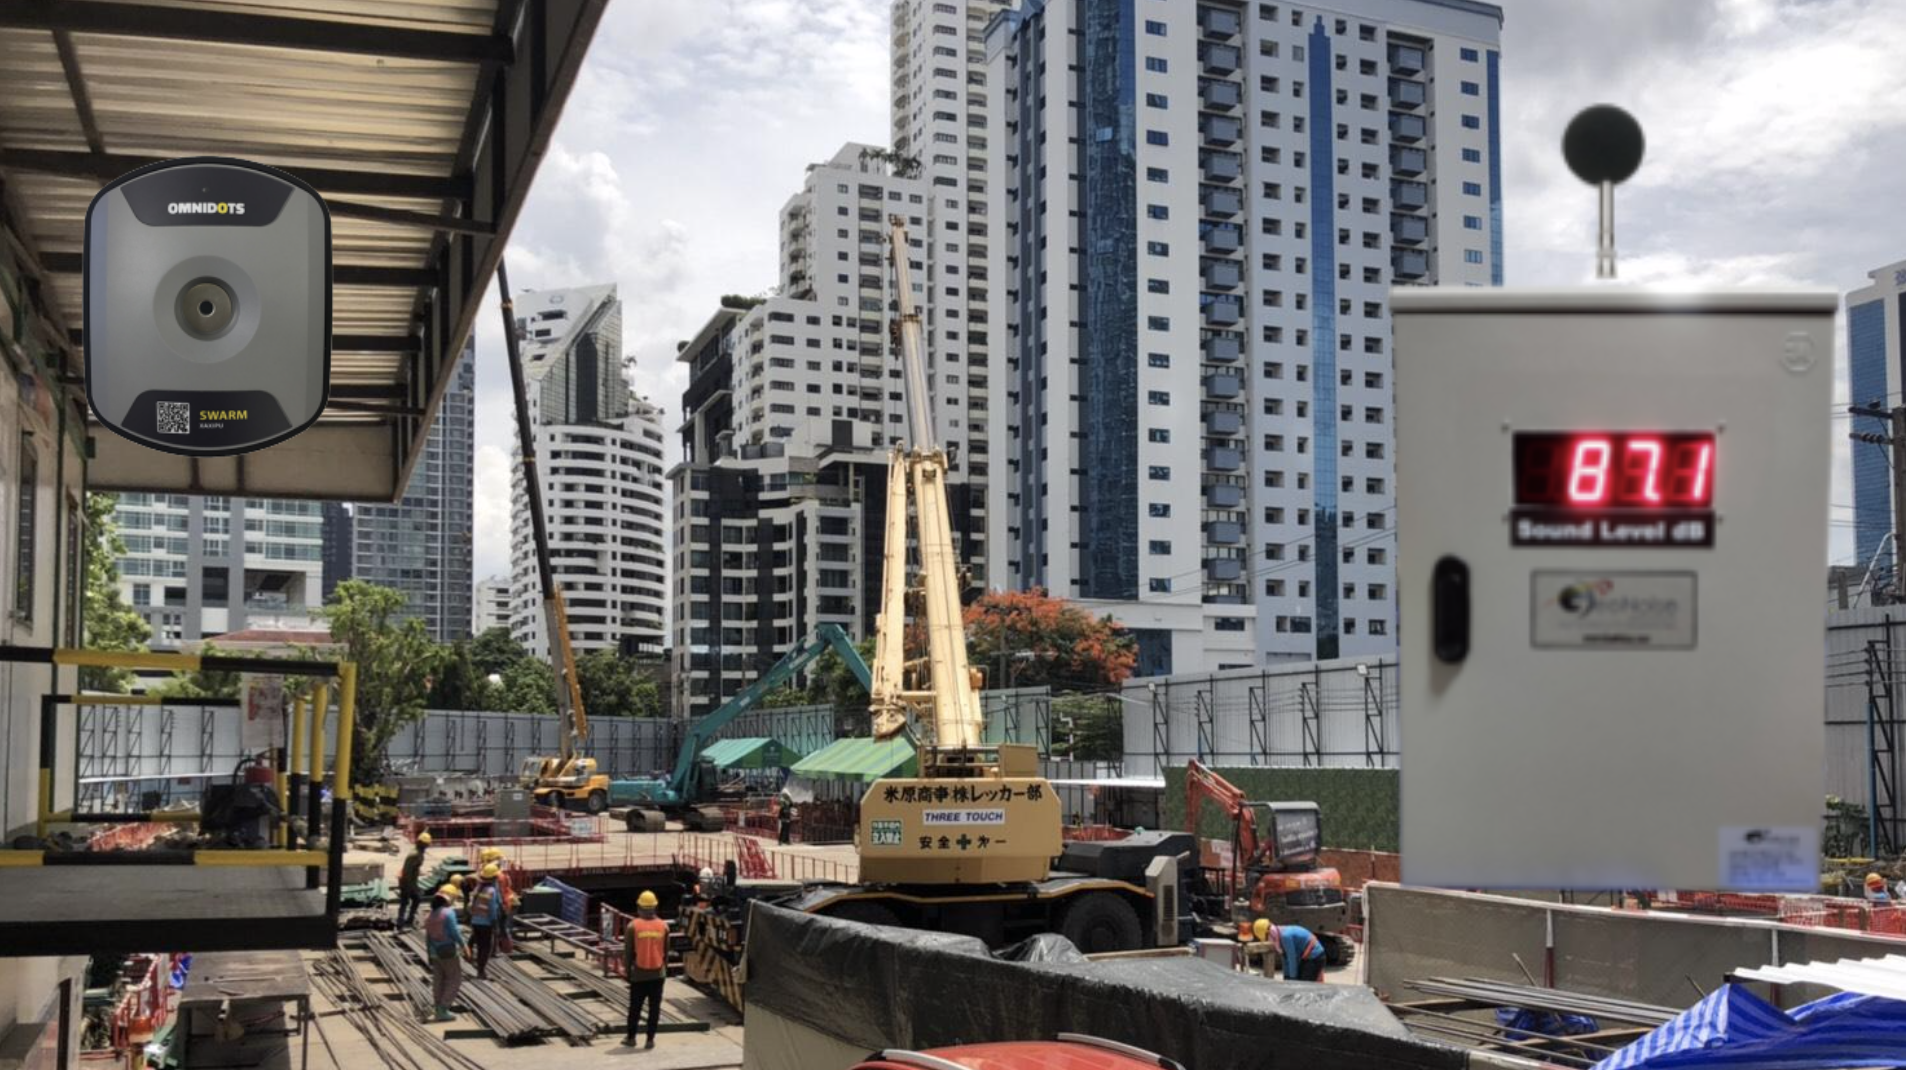 Noise and Vibration Monitoring for Construction Sites